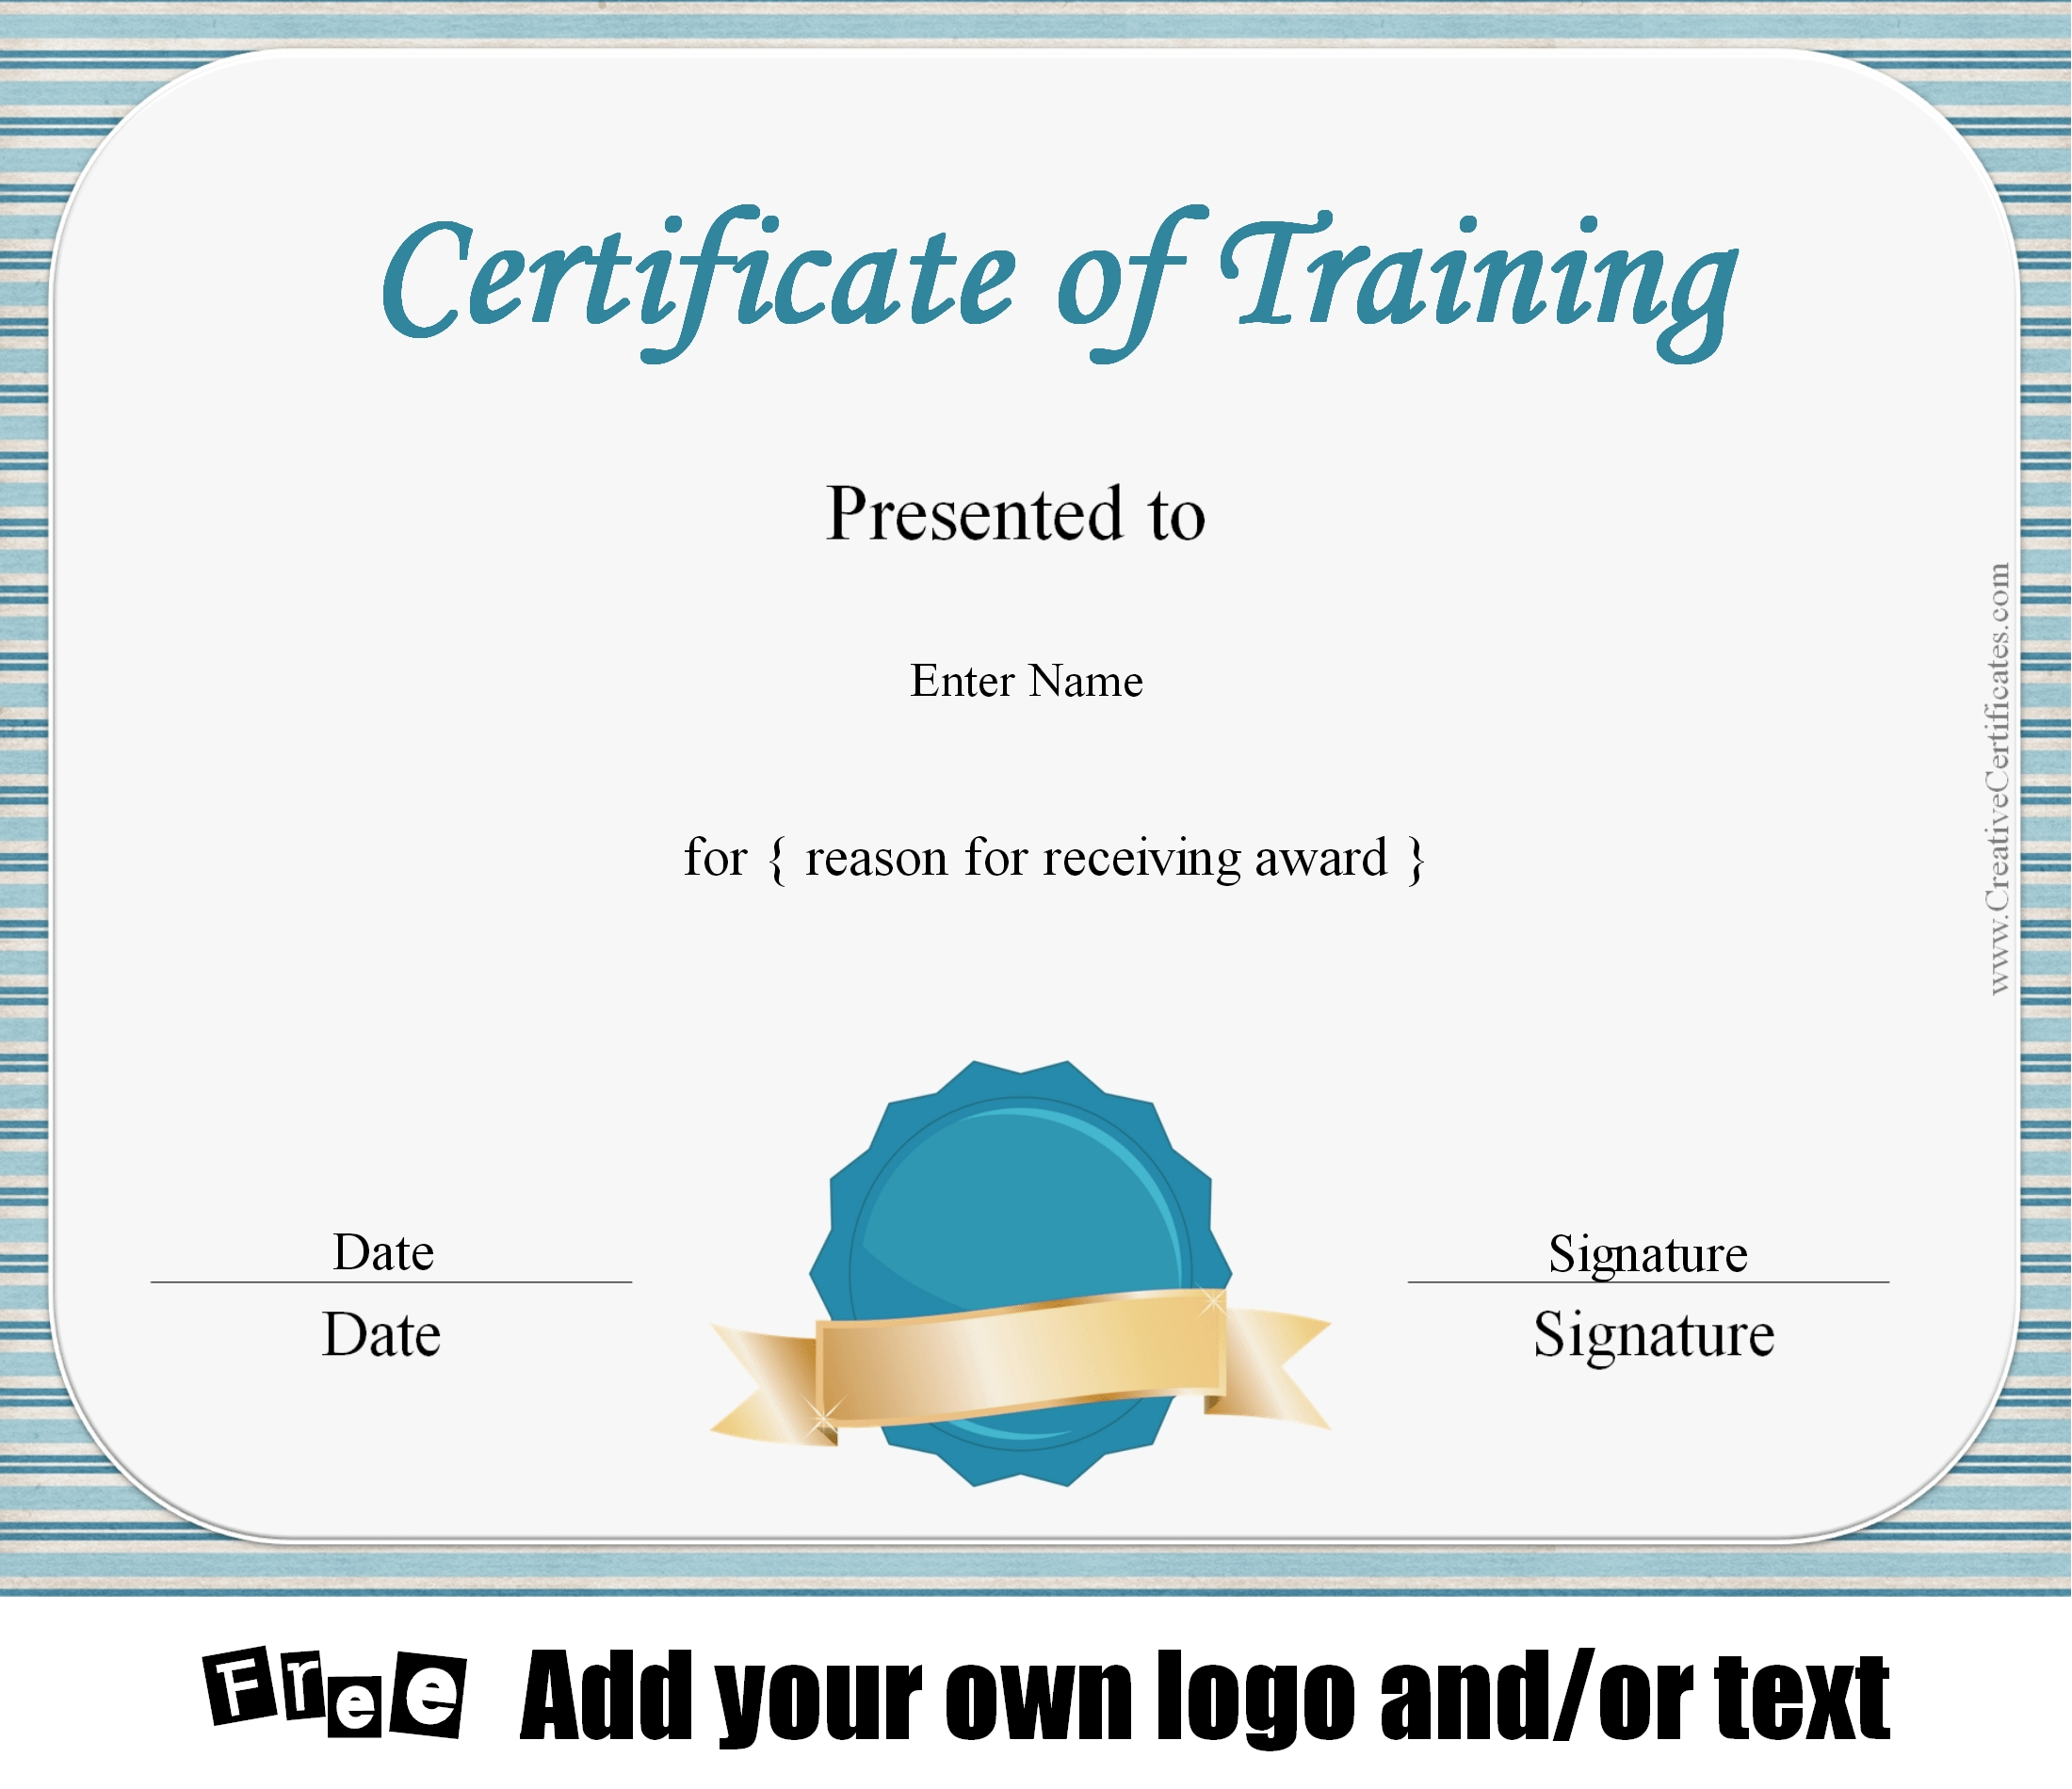 Certificate Of Training Template, Customizable